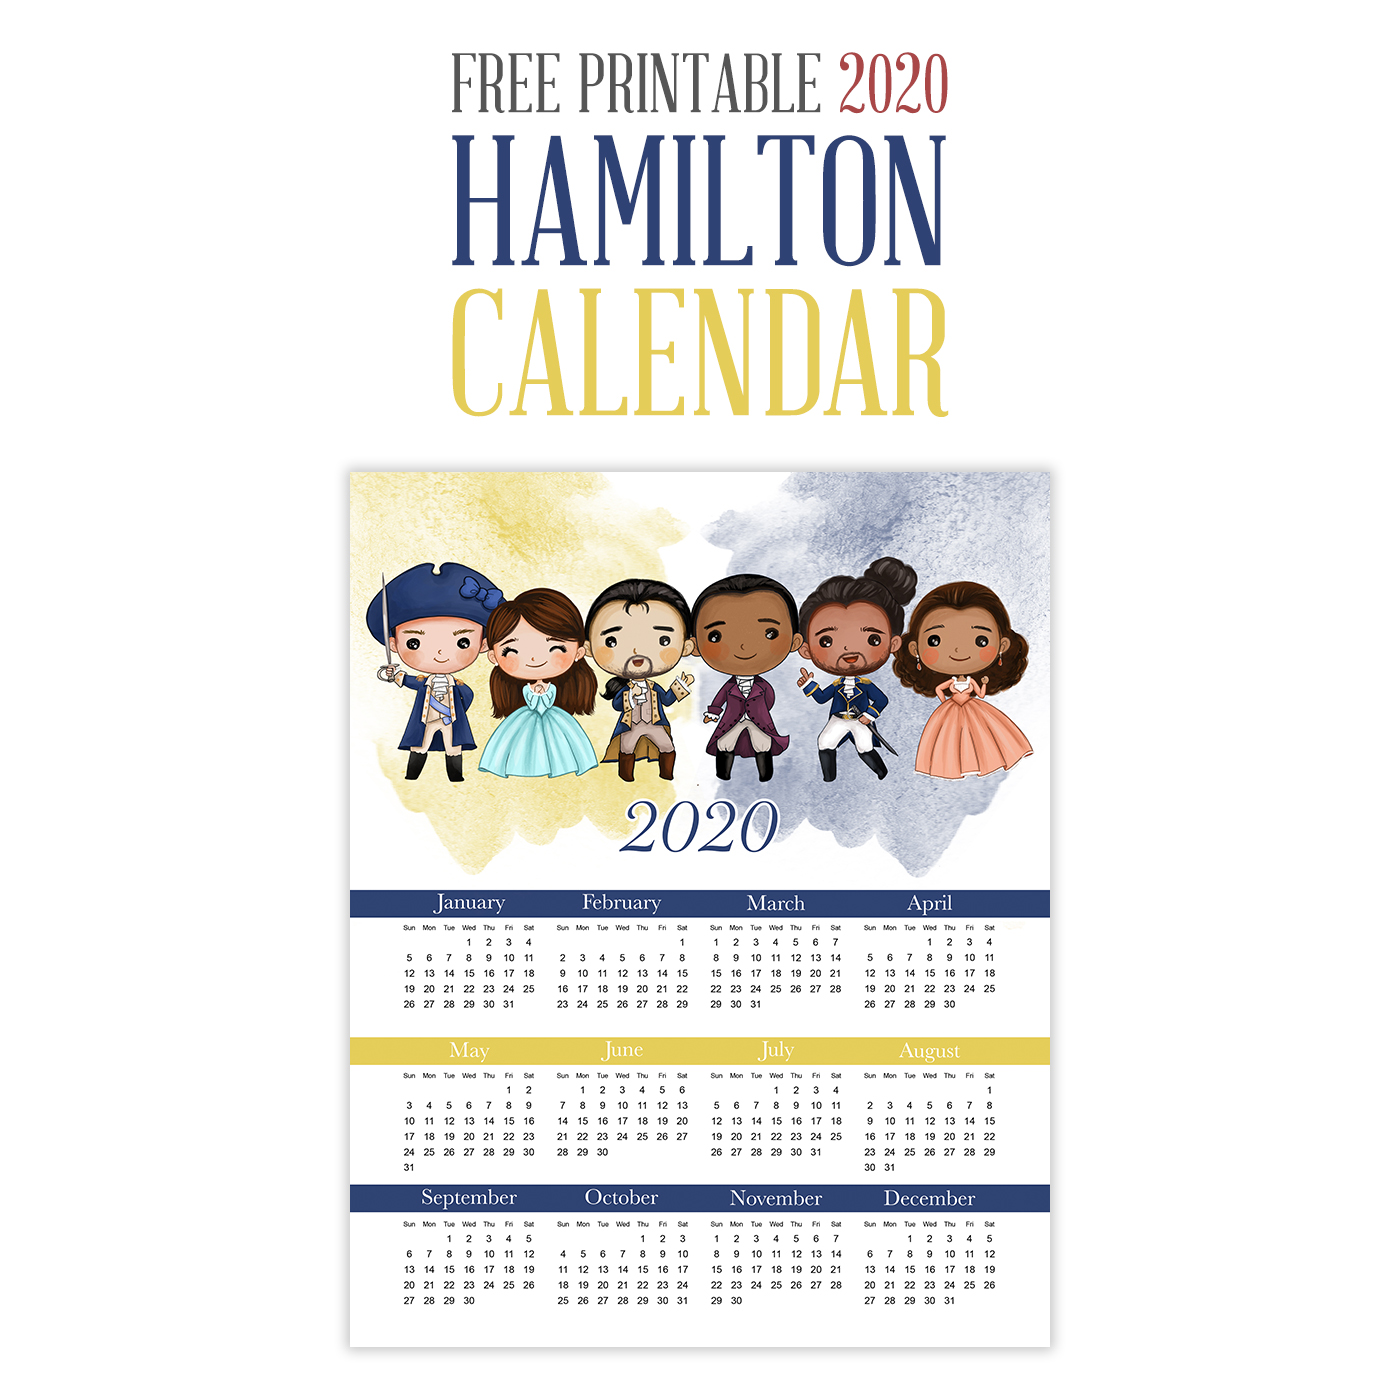 This Free Printable 2020 Hamilton Calendar is just what you need to keep your organized and on time this coming year! Come on over and print one of your very own!